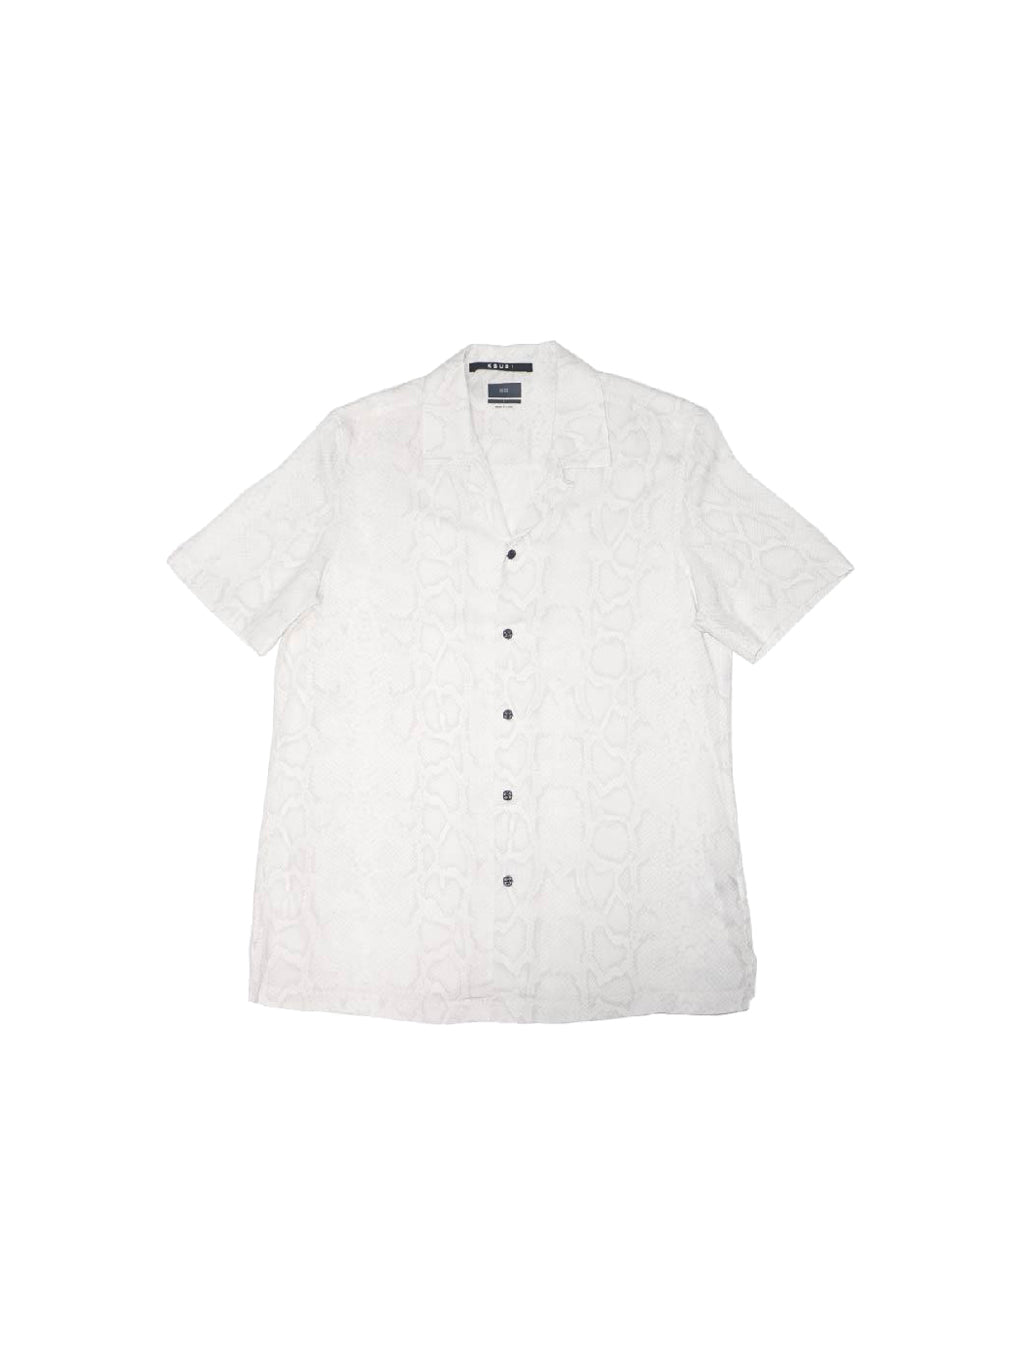 White BOA Resort Shirt